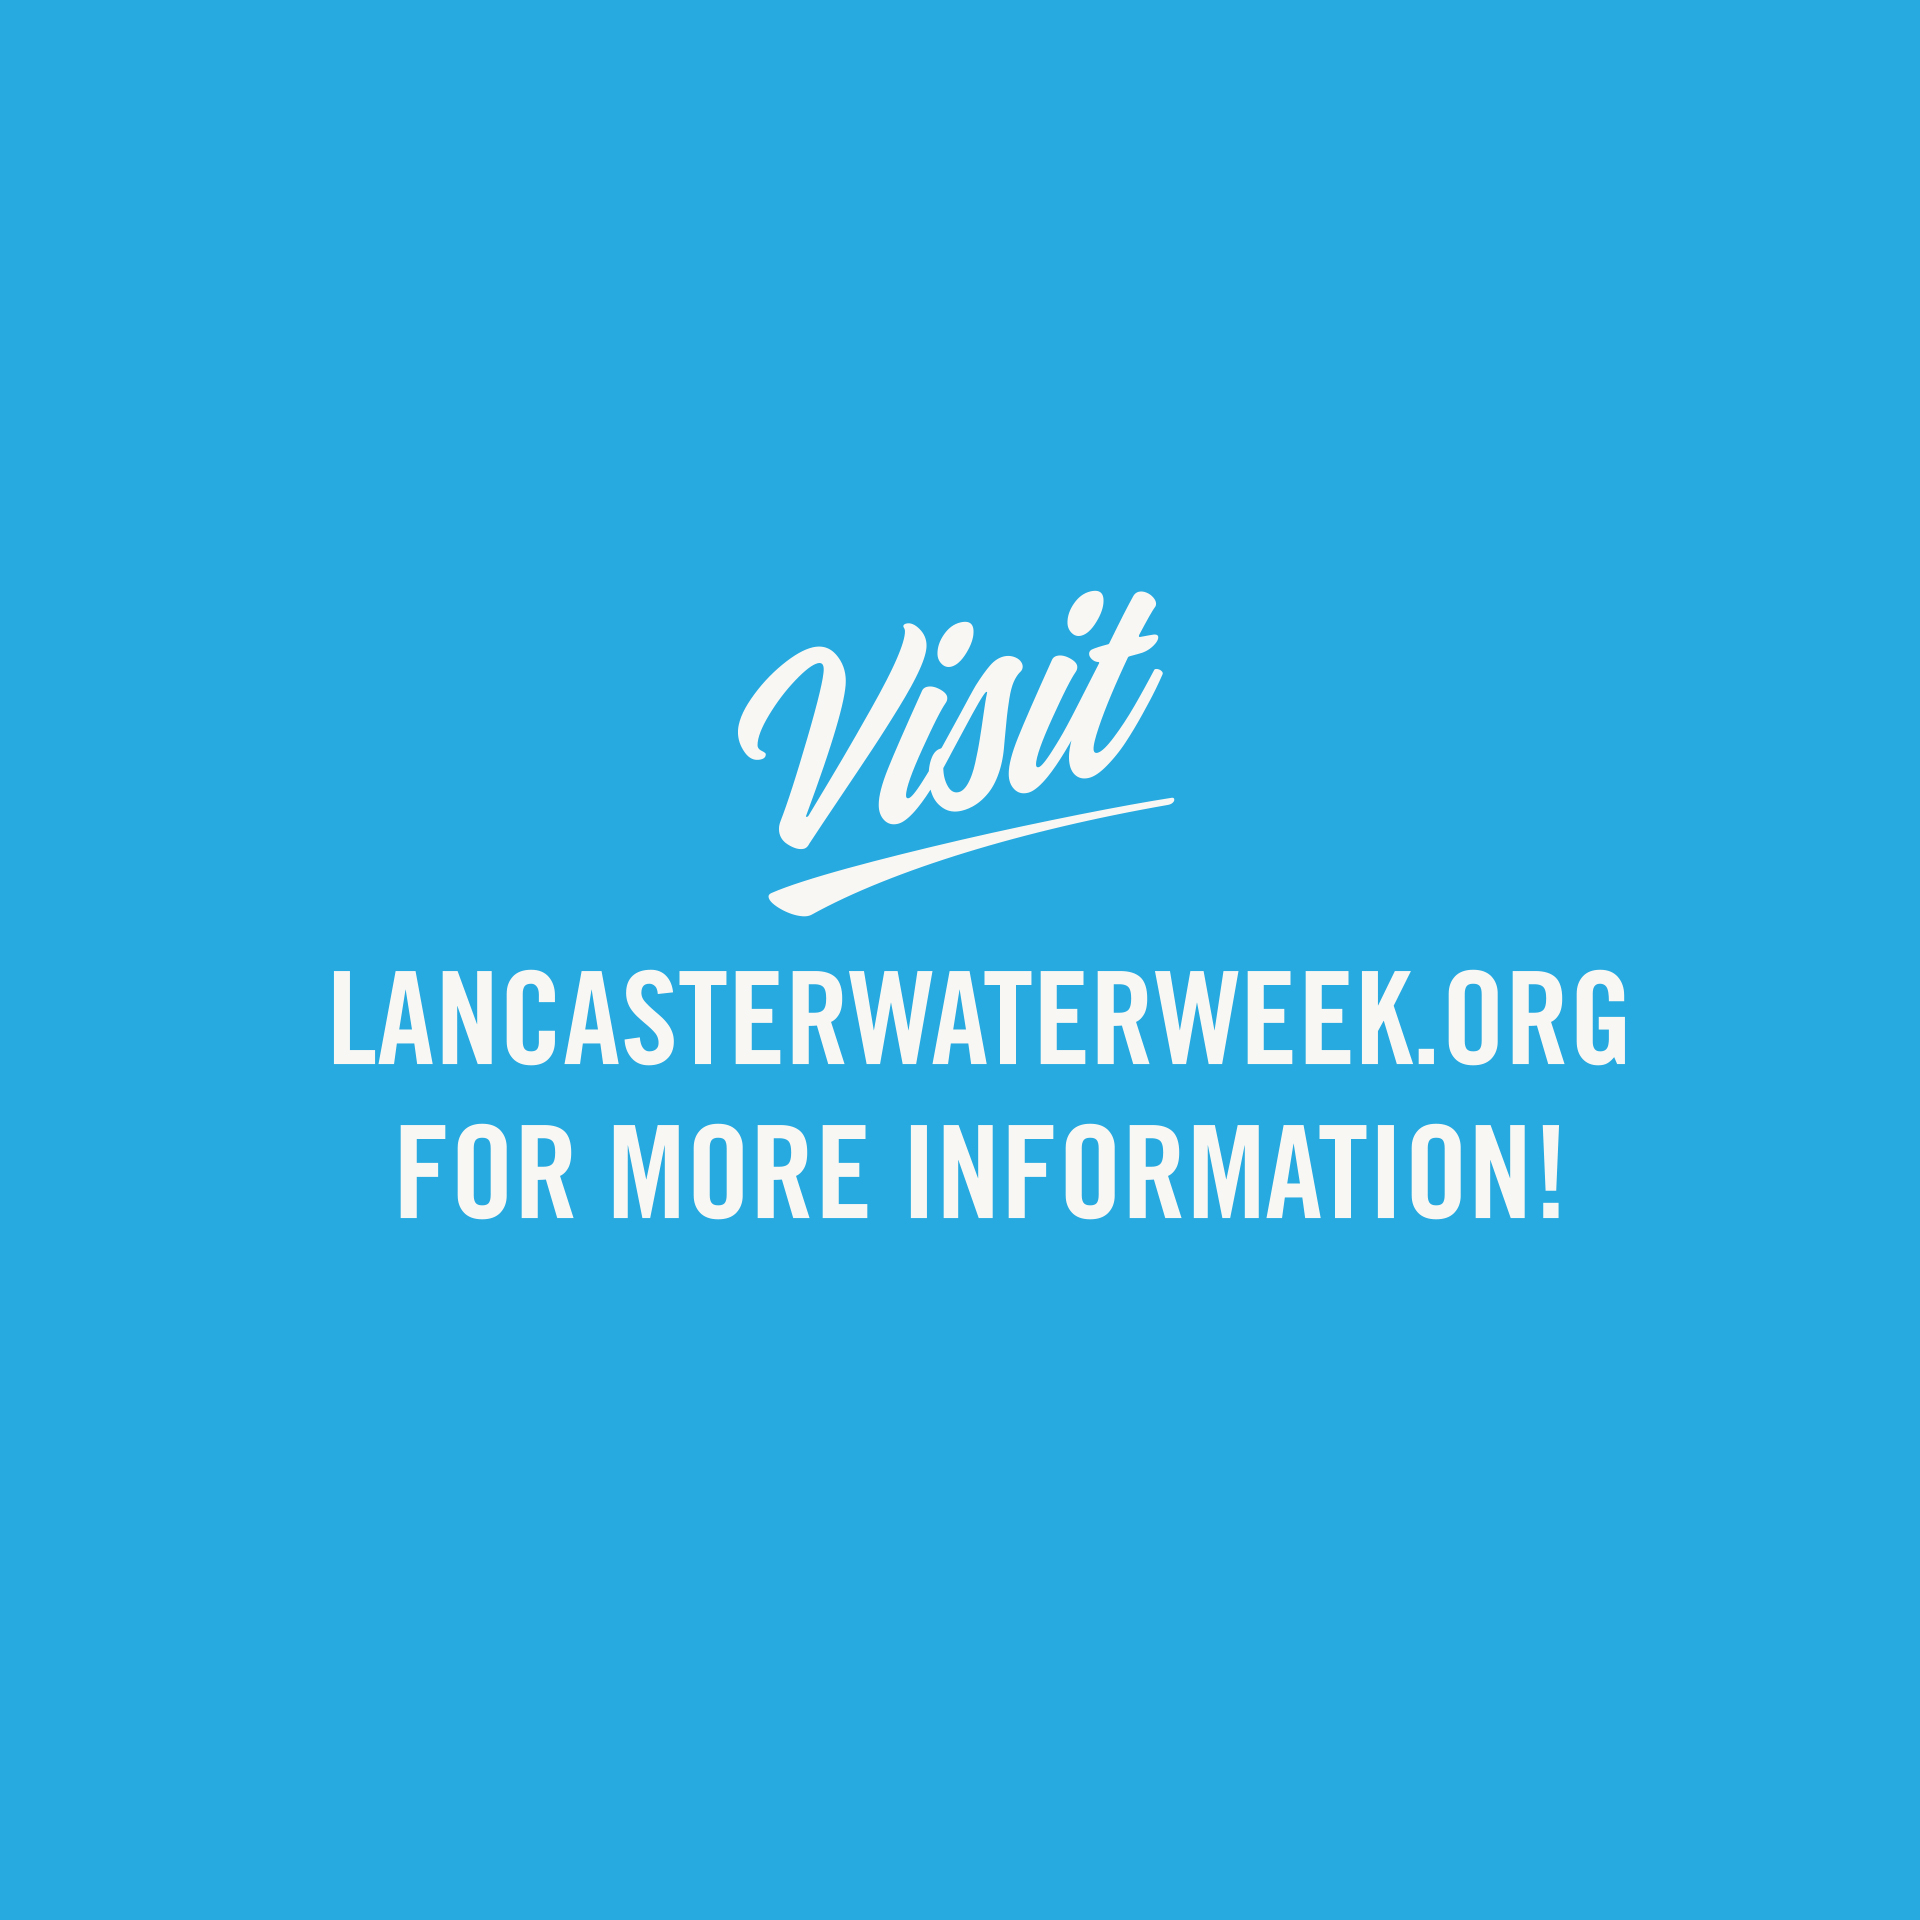 title card 'visit lancasterwaterweek.org for more information!'